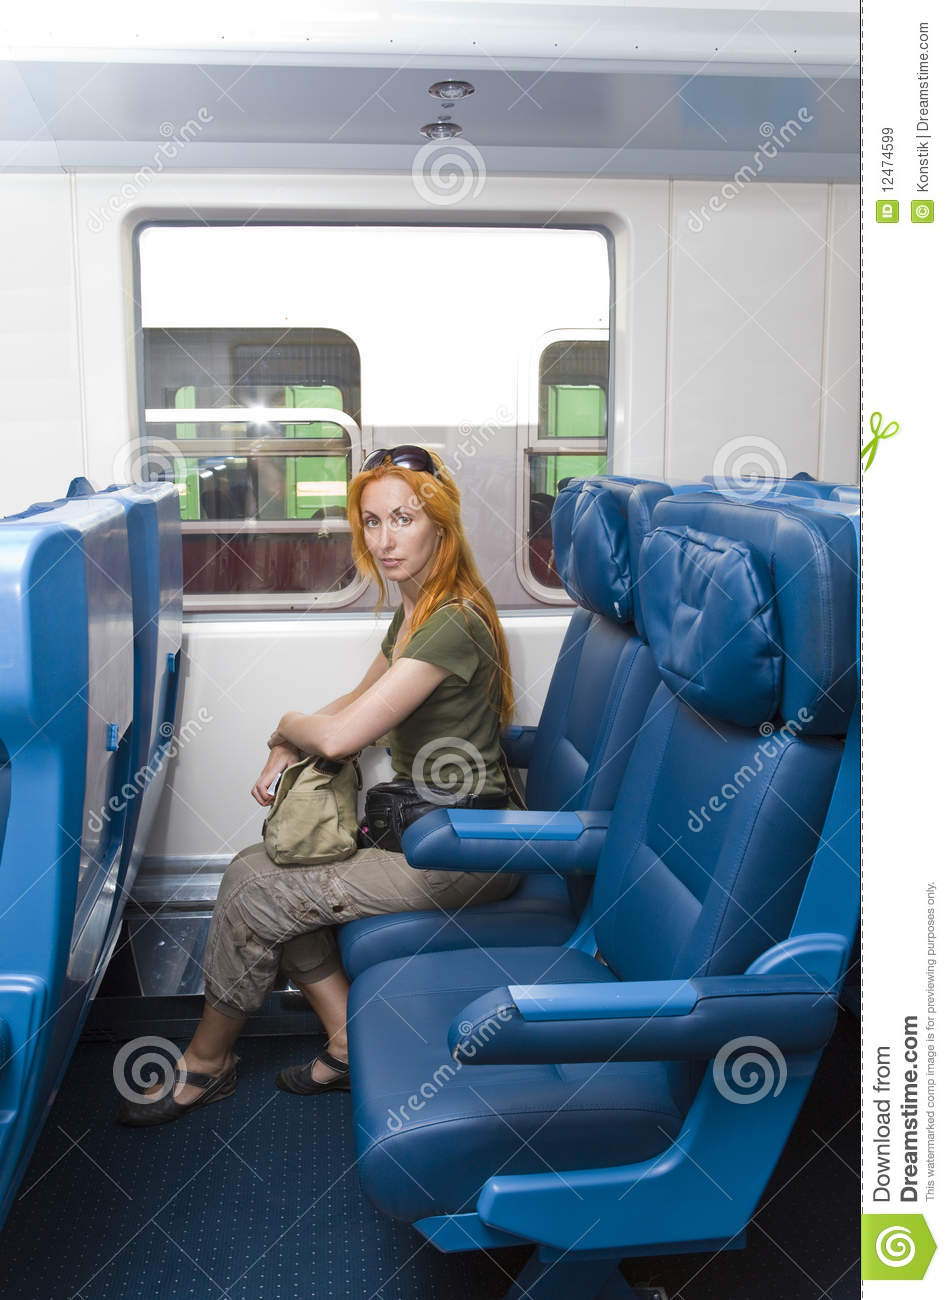 interior of a passenger train with young woman royalty free stock images image 12474599. Black Bedroom Furniture Sets. Home Design Ideas